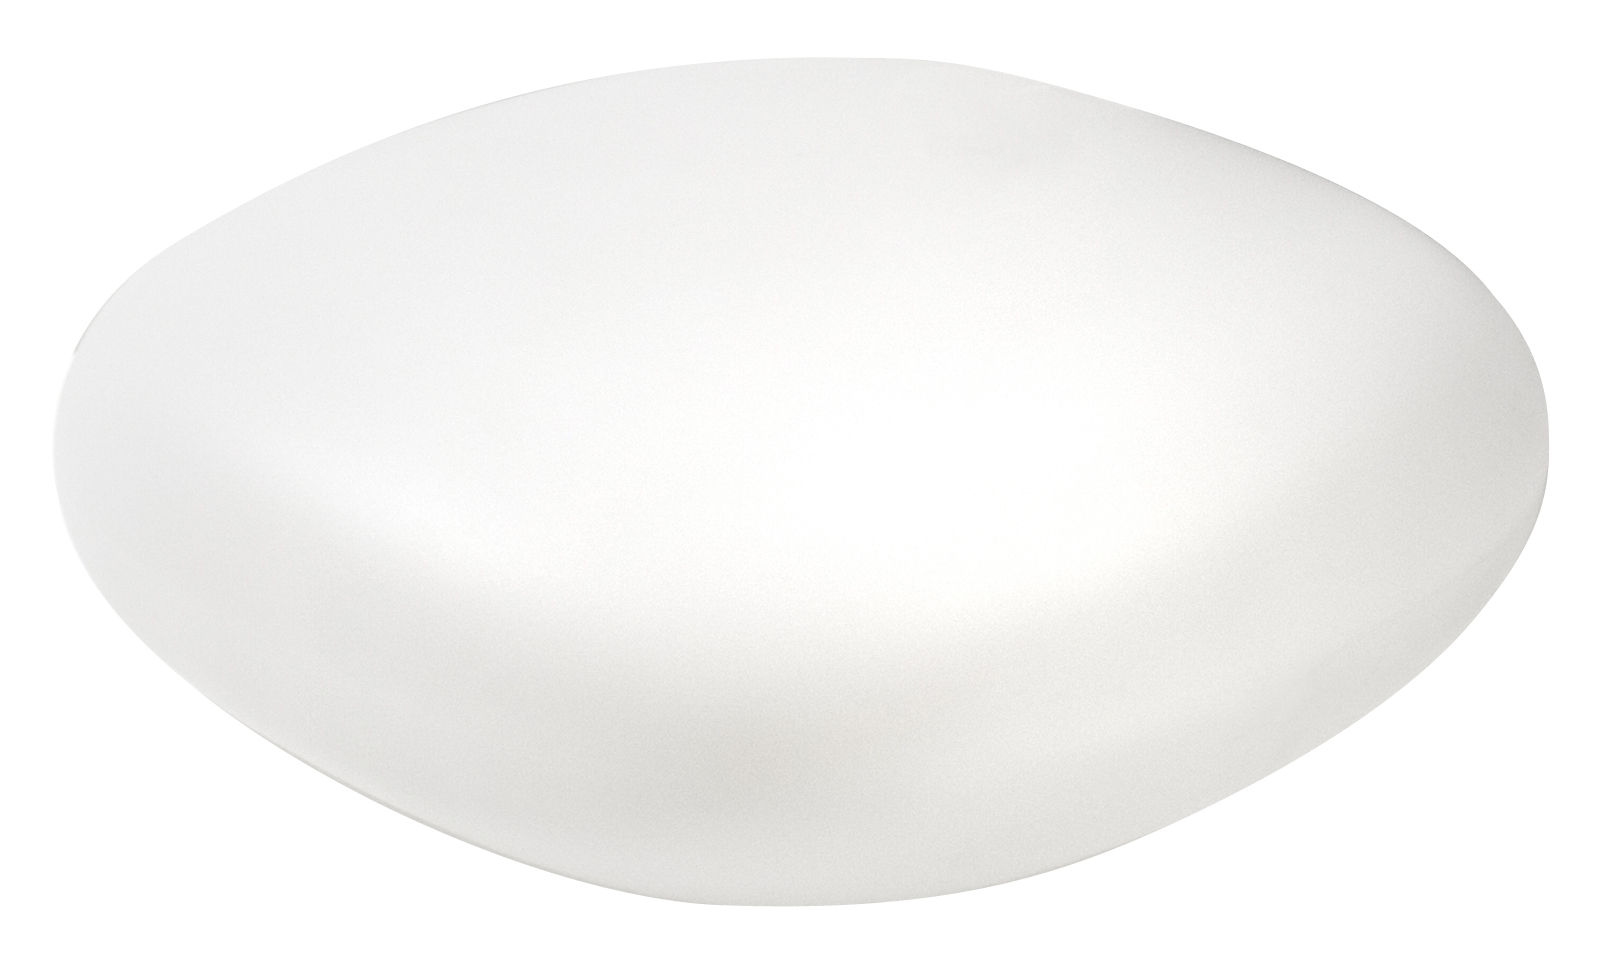 Mobilier - Tables basses - Table basse Chubby Low - Slide - Blanc - Polyéthylène